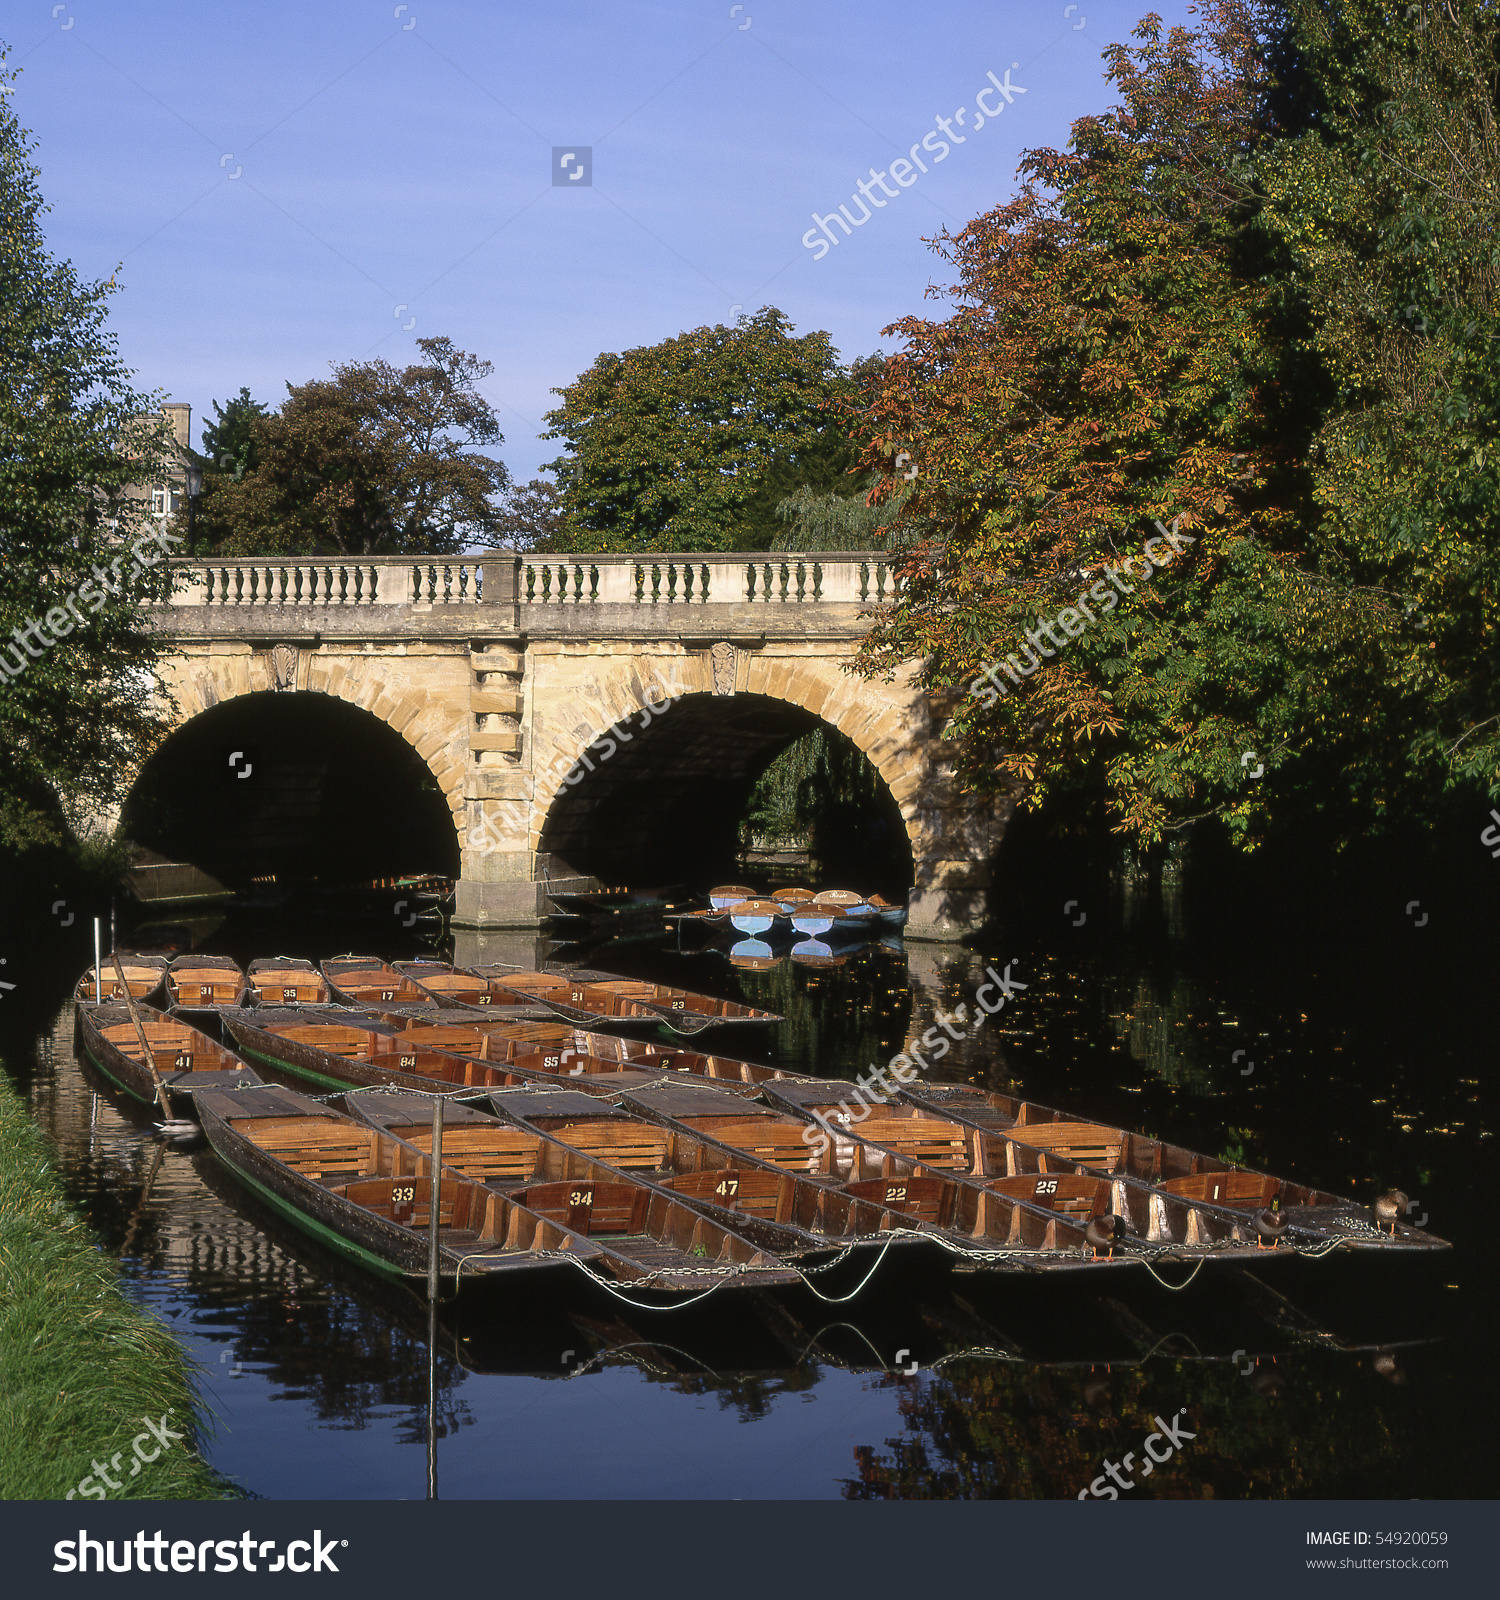 Moored Punts On River Cherwell By Magdalen Bridge. Oxford. England.